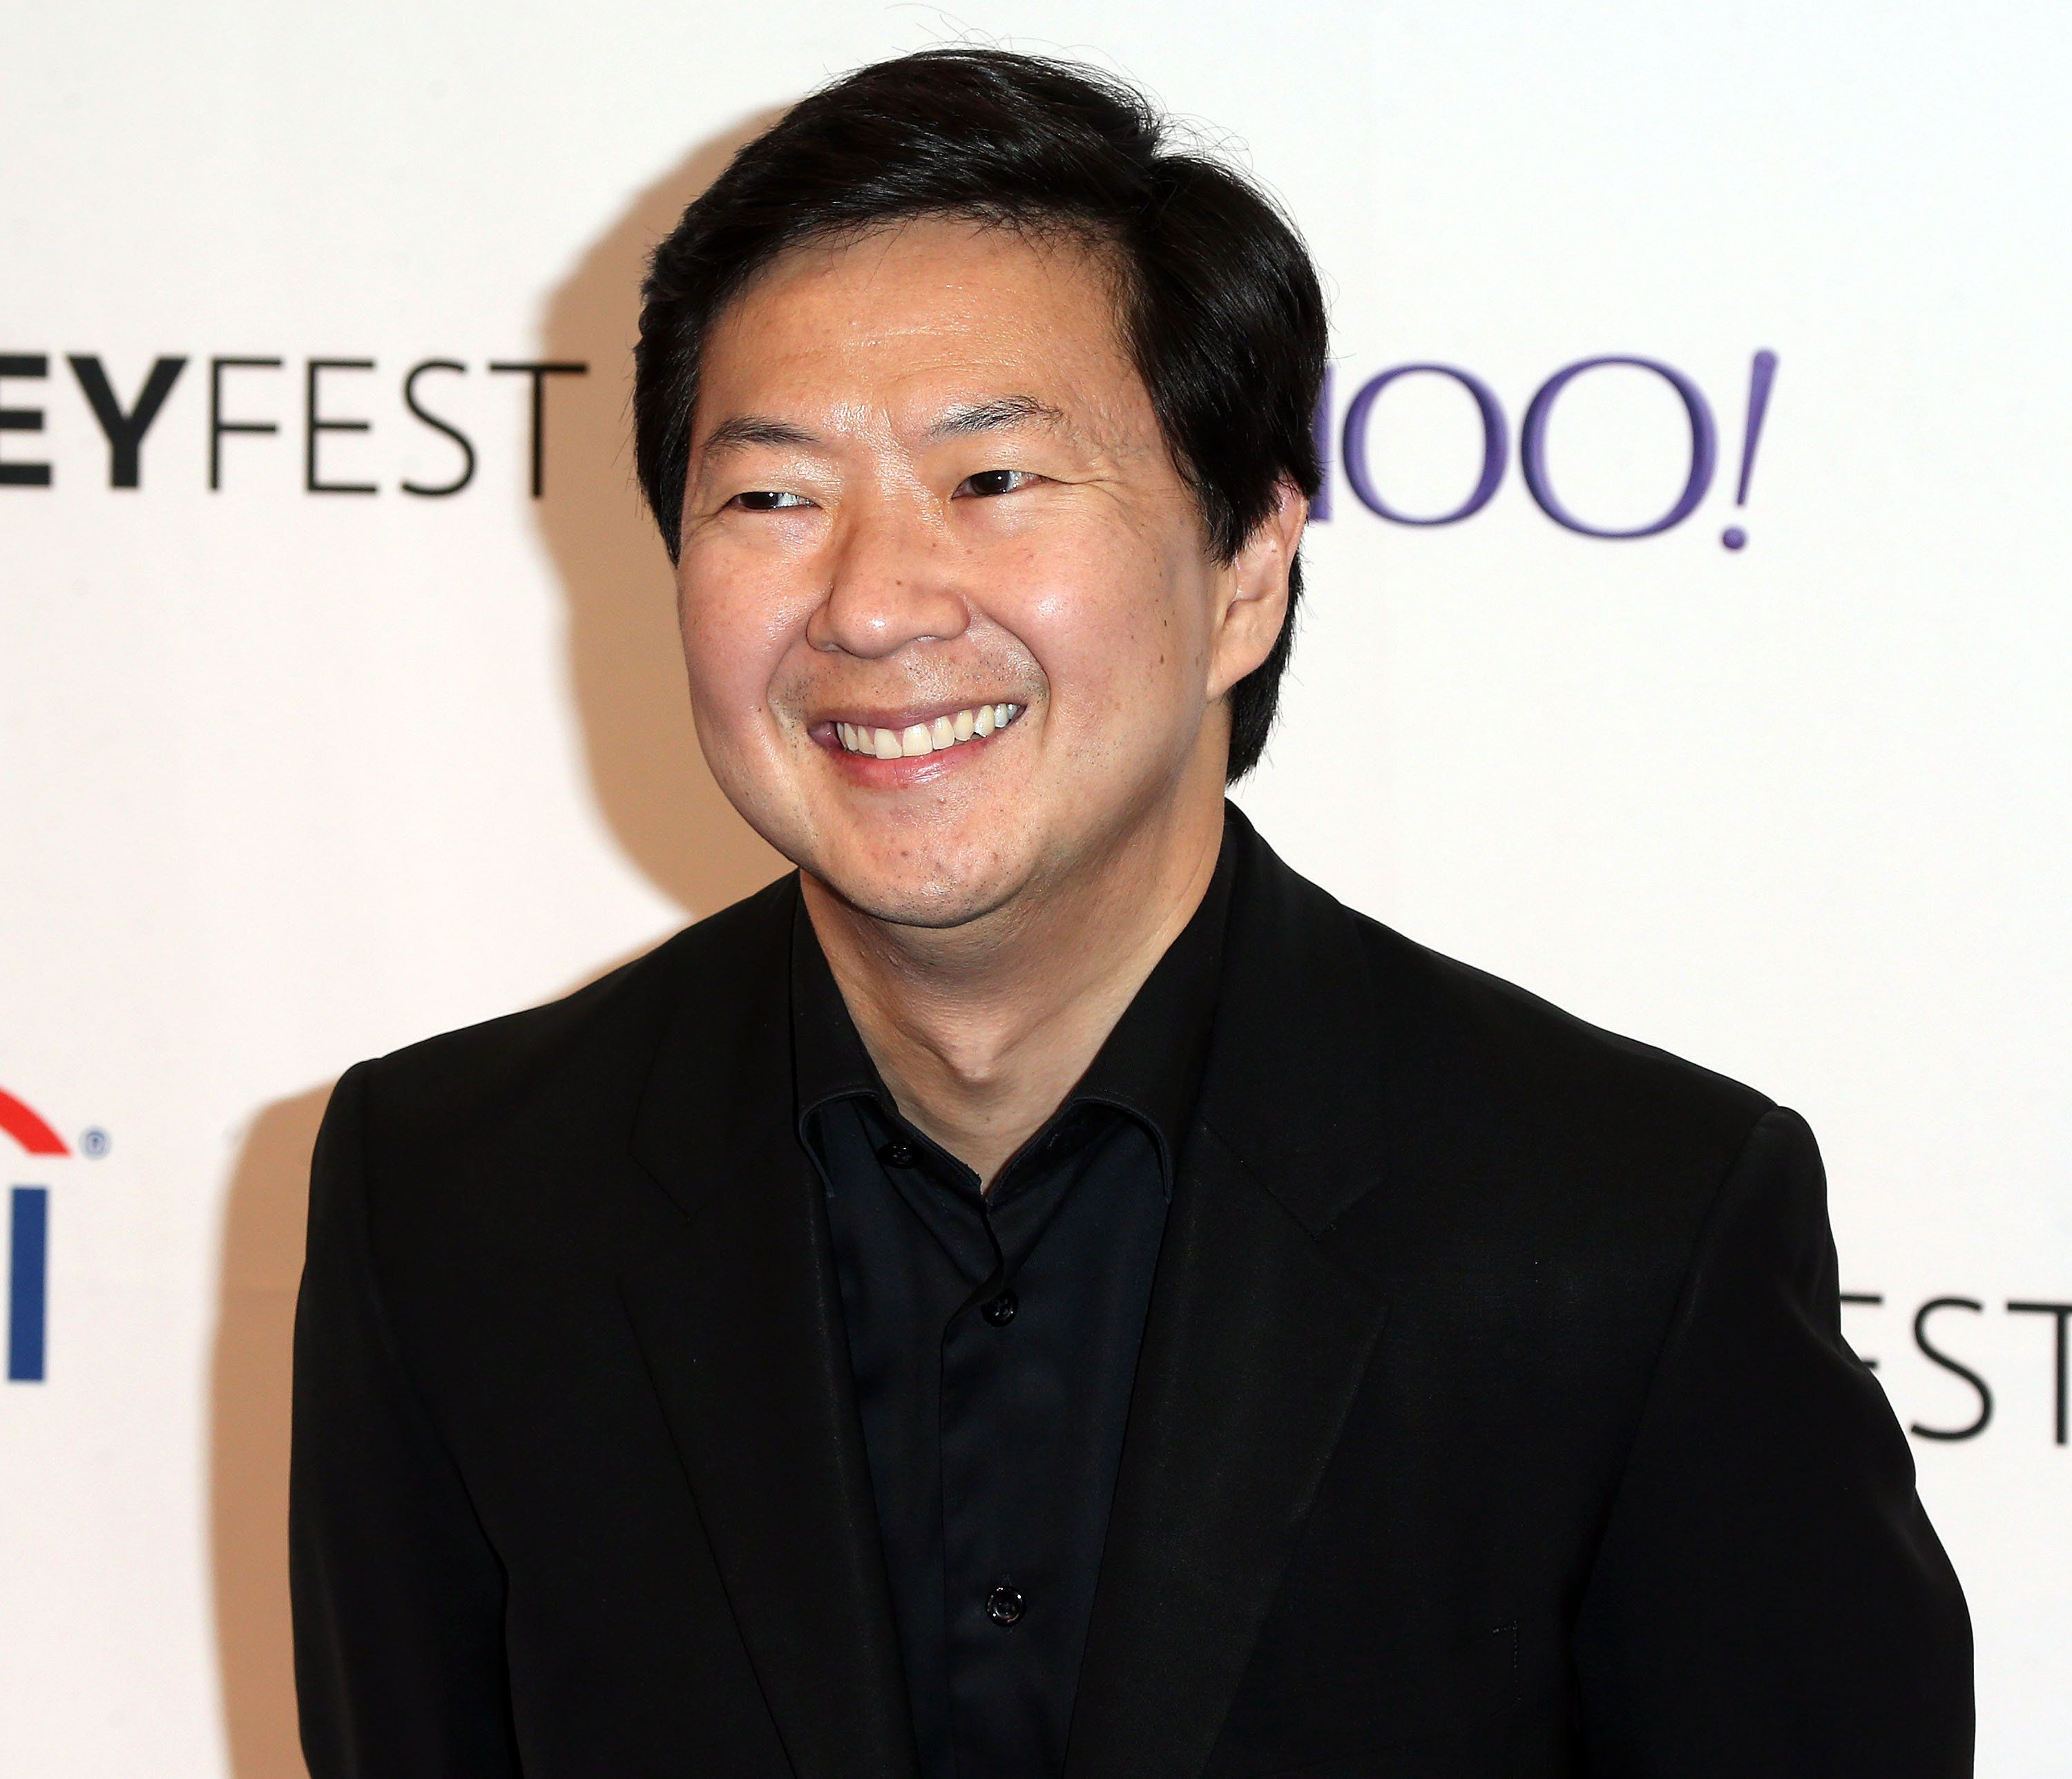 BEVERLY HILLS, CA - SEPTEMBER 12:  Actor Ken Jeong attends The Paley Center for Media's PaleyFest 2015 Fall TV Preview for ABC at The Paley Center for Media on September 12, 2015 in Beverly Hills, California.  (Photo by Frederick M. Brown/Getty Images)